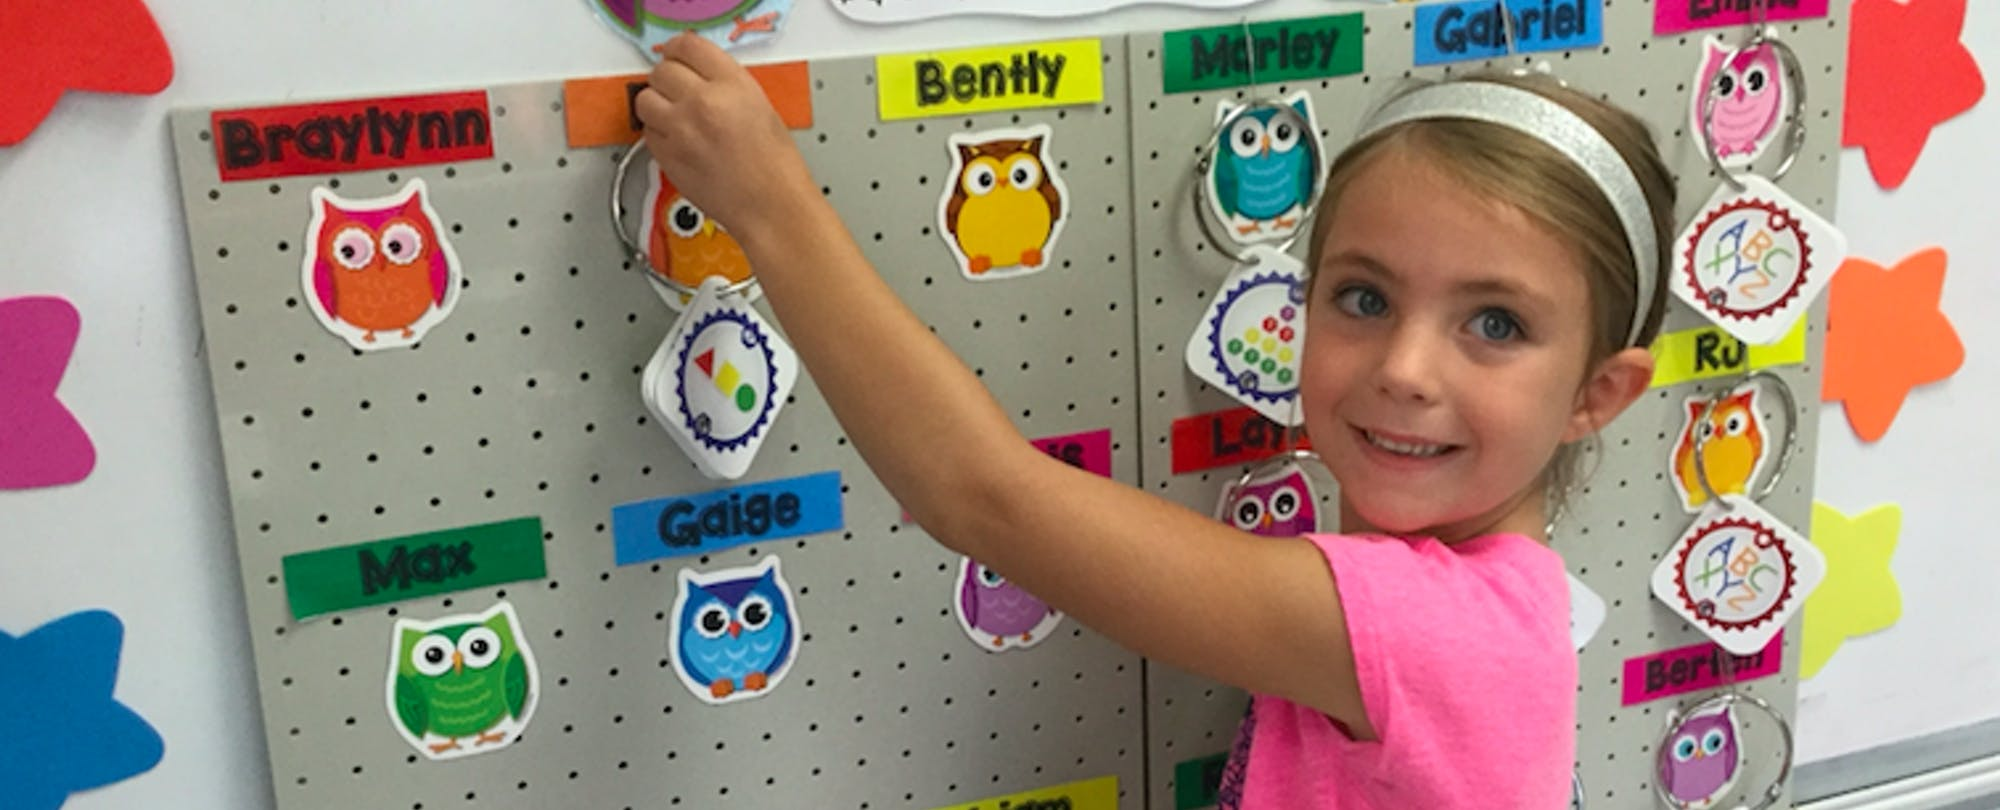 Micro-Credentials for Micro-Students—Kindergarteners Swap Grades for Badges